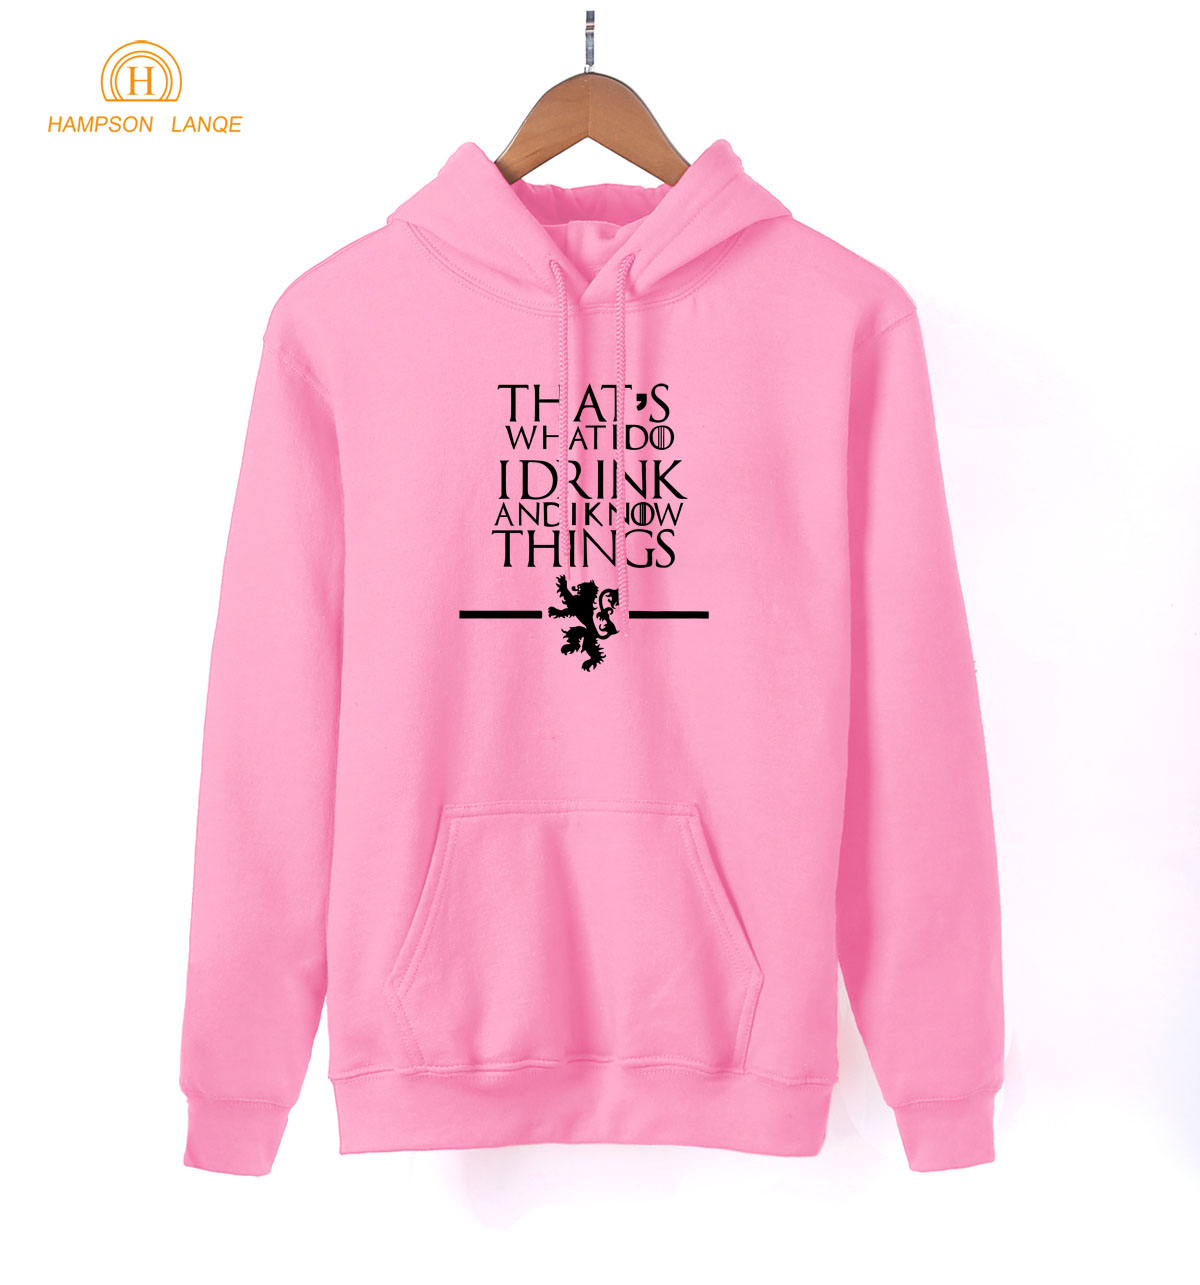 Game Of Thrones Lannister That's What I Do , I Drink and I know Things Print Movie Hoodies 2019 Spring Hot Sale Sweatshirt Women